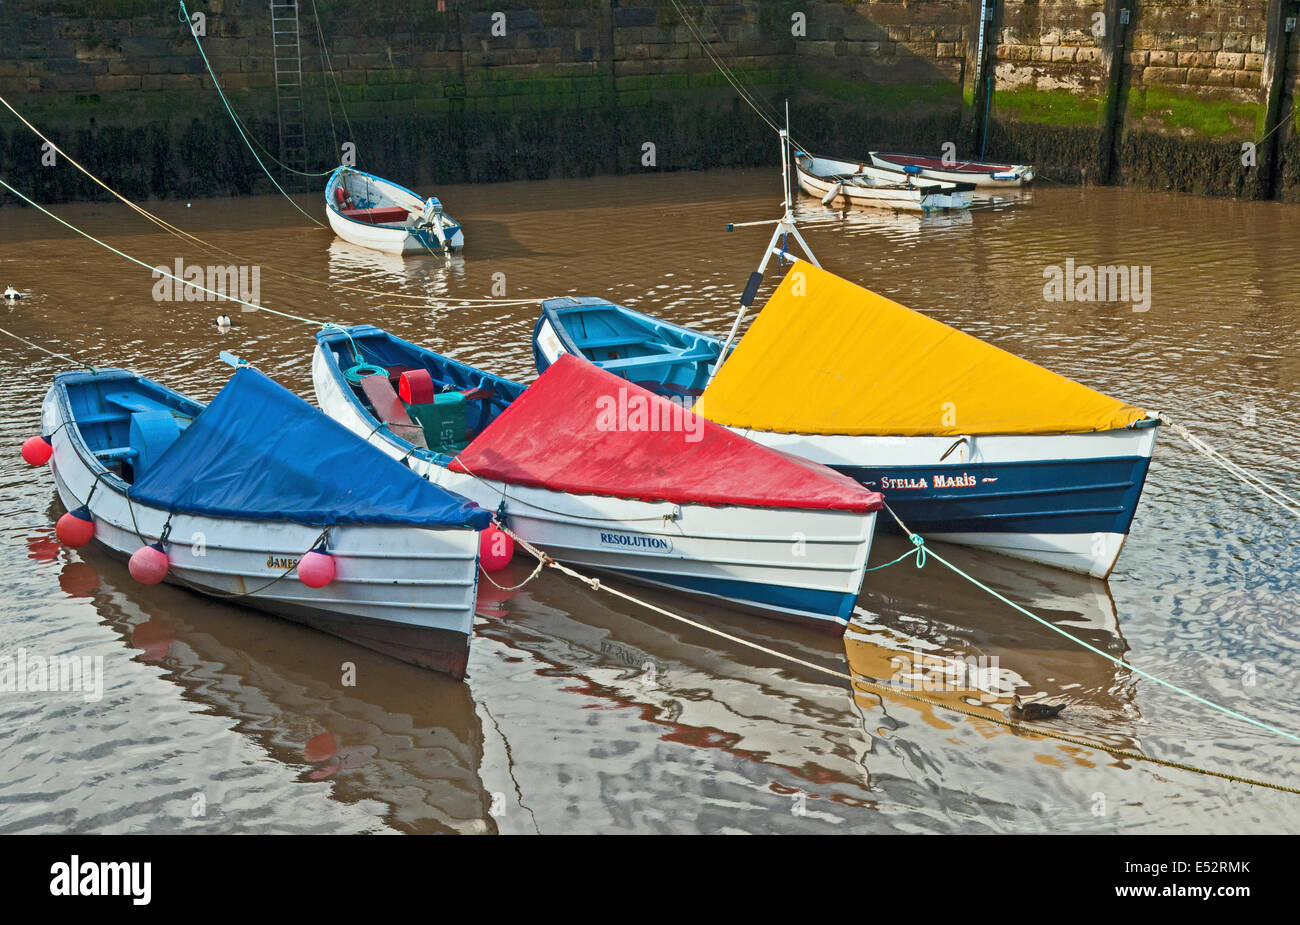 Northumberland Coble Fishing Boats Moored in Amble Harbour Northumberland in the north east of England - Stock Image